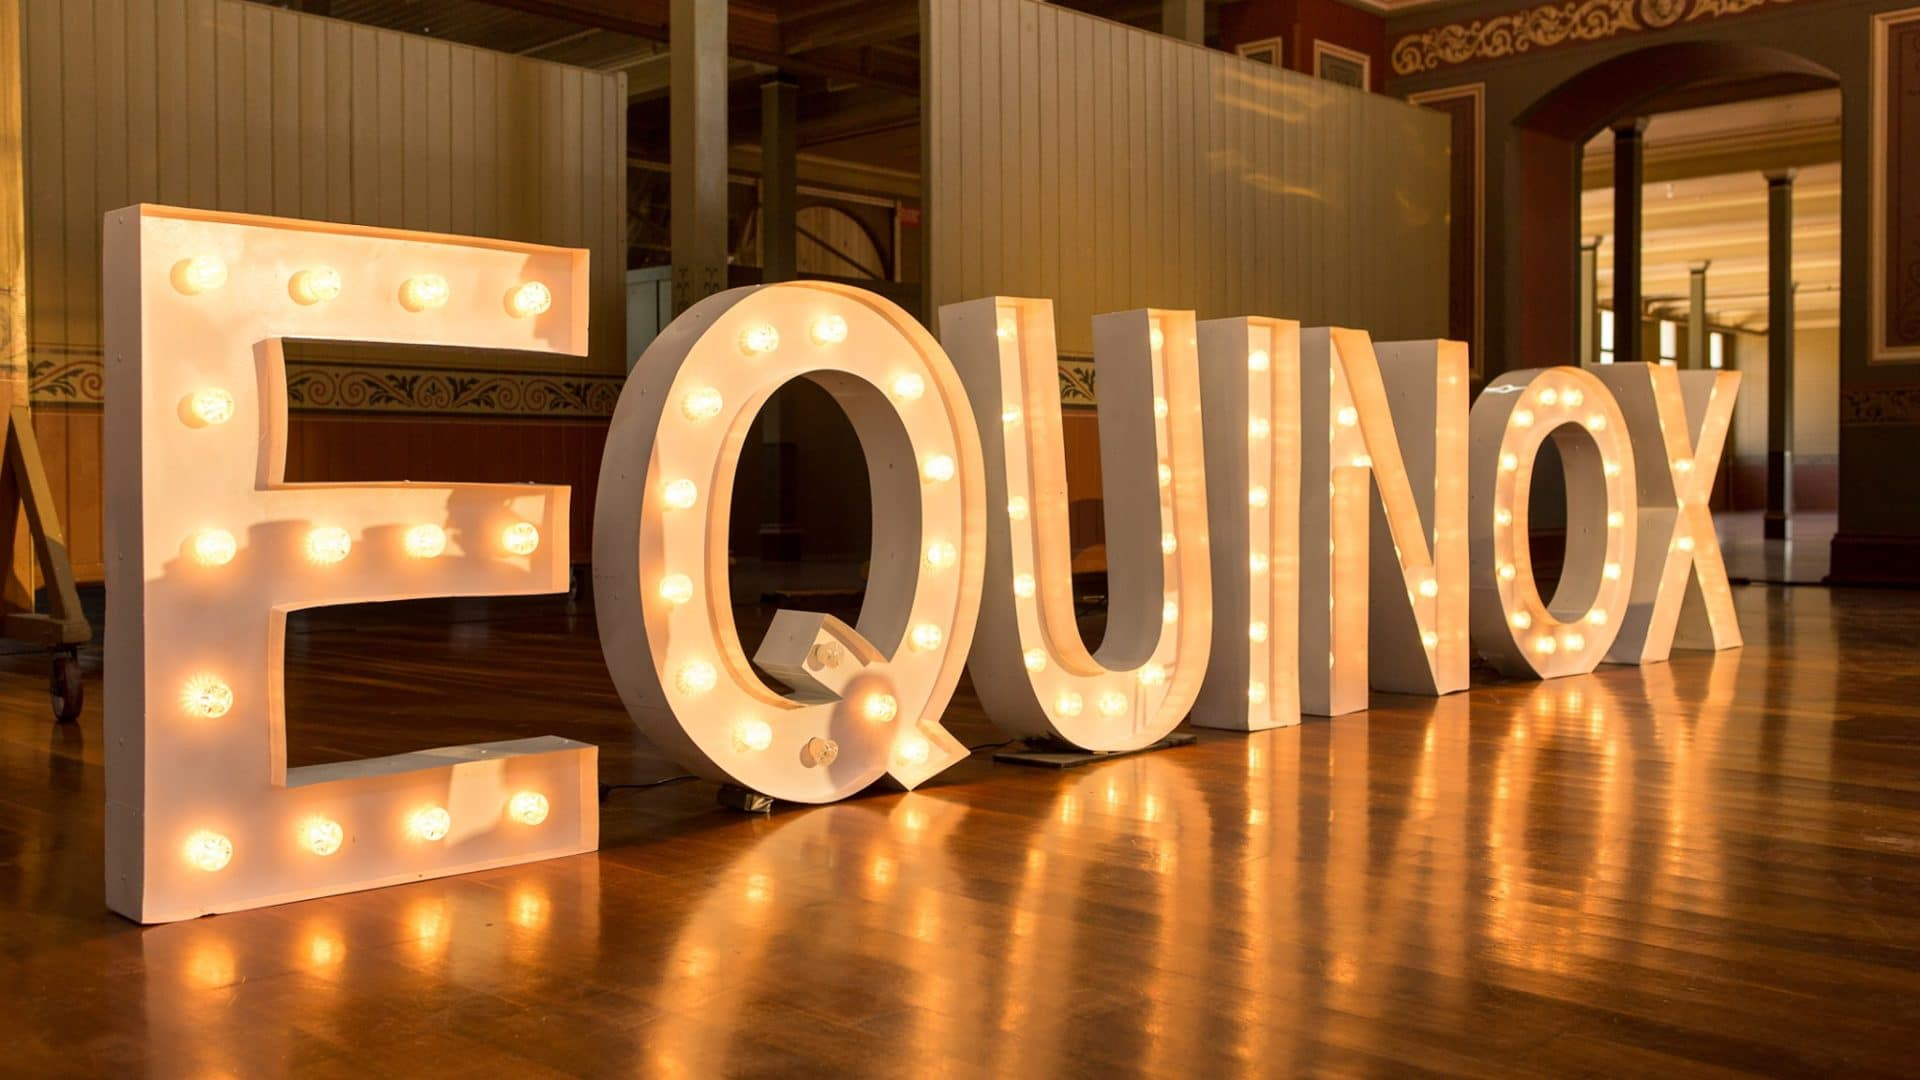 Equinox Evolution Melbourne Logo and AIS Australia Architectural Expo. Exhibition showcasing polycarbonate Roofing, Skylights and Wall Panel Cladding